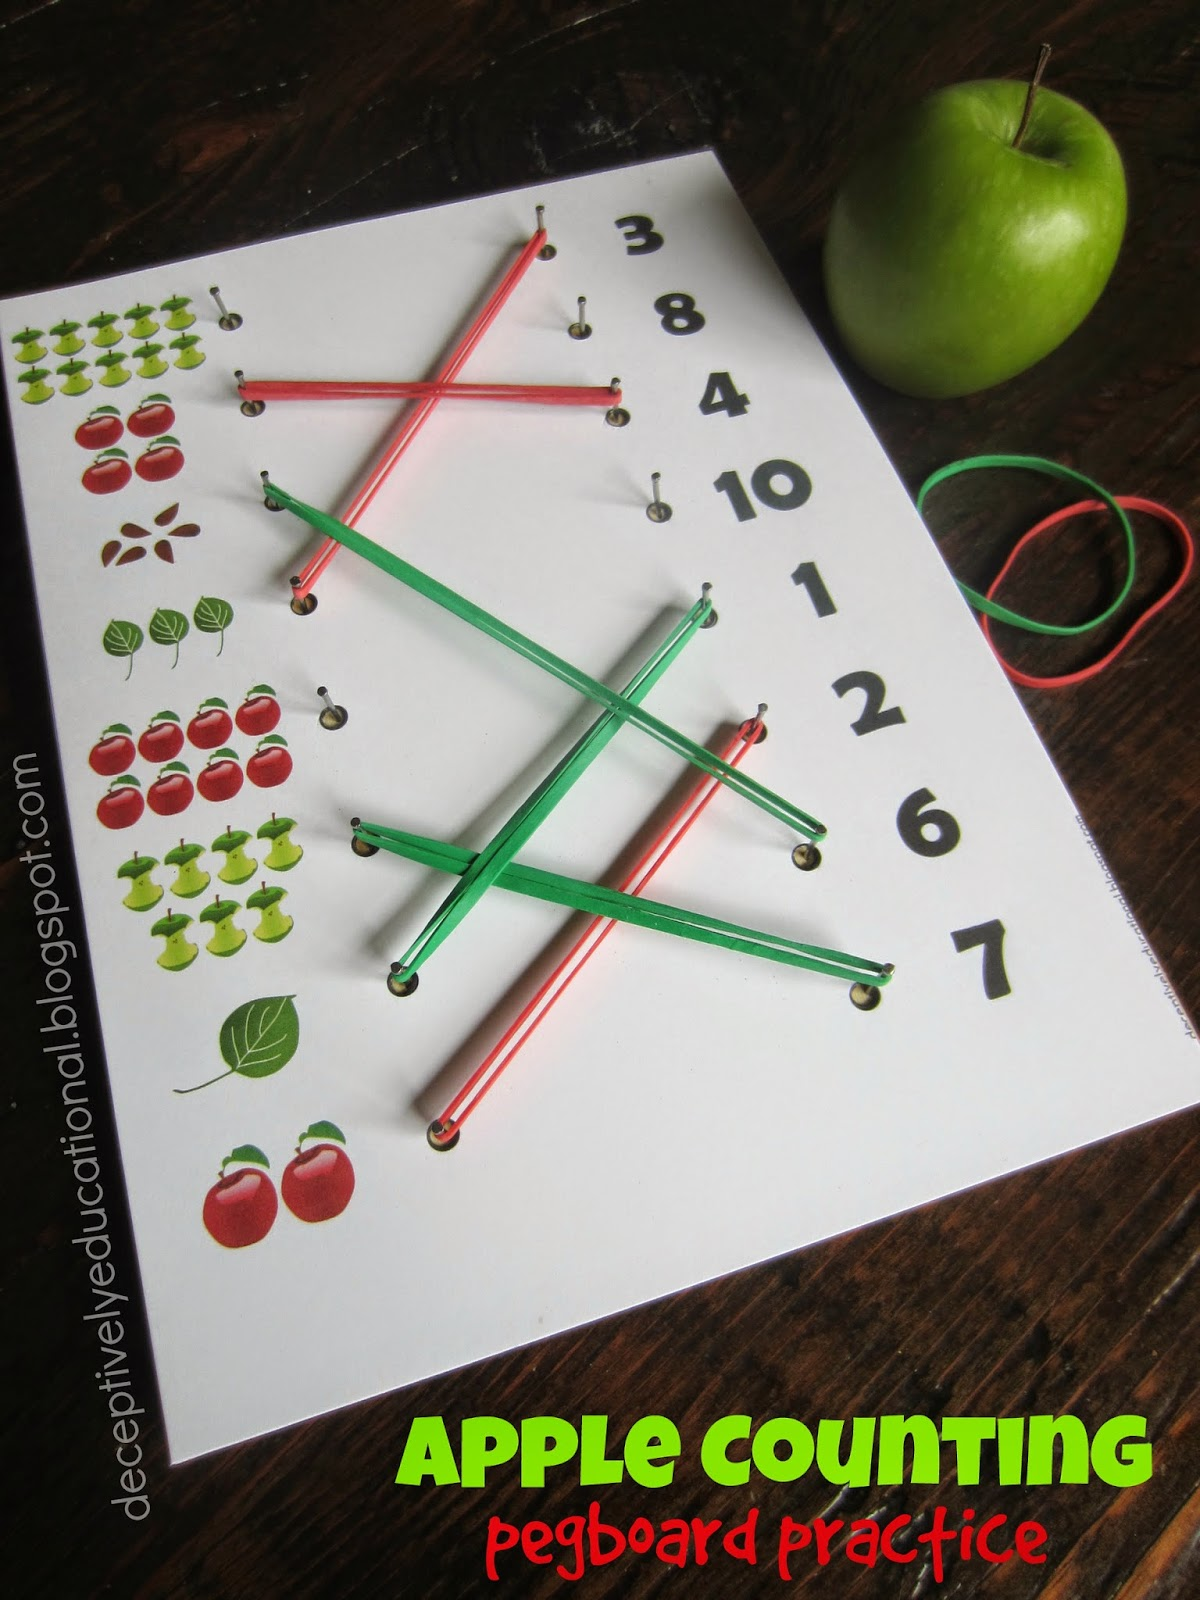 Relentlessly Fun Deceptively Educational Counting Apples Pegboard Practice